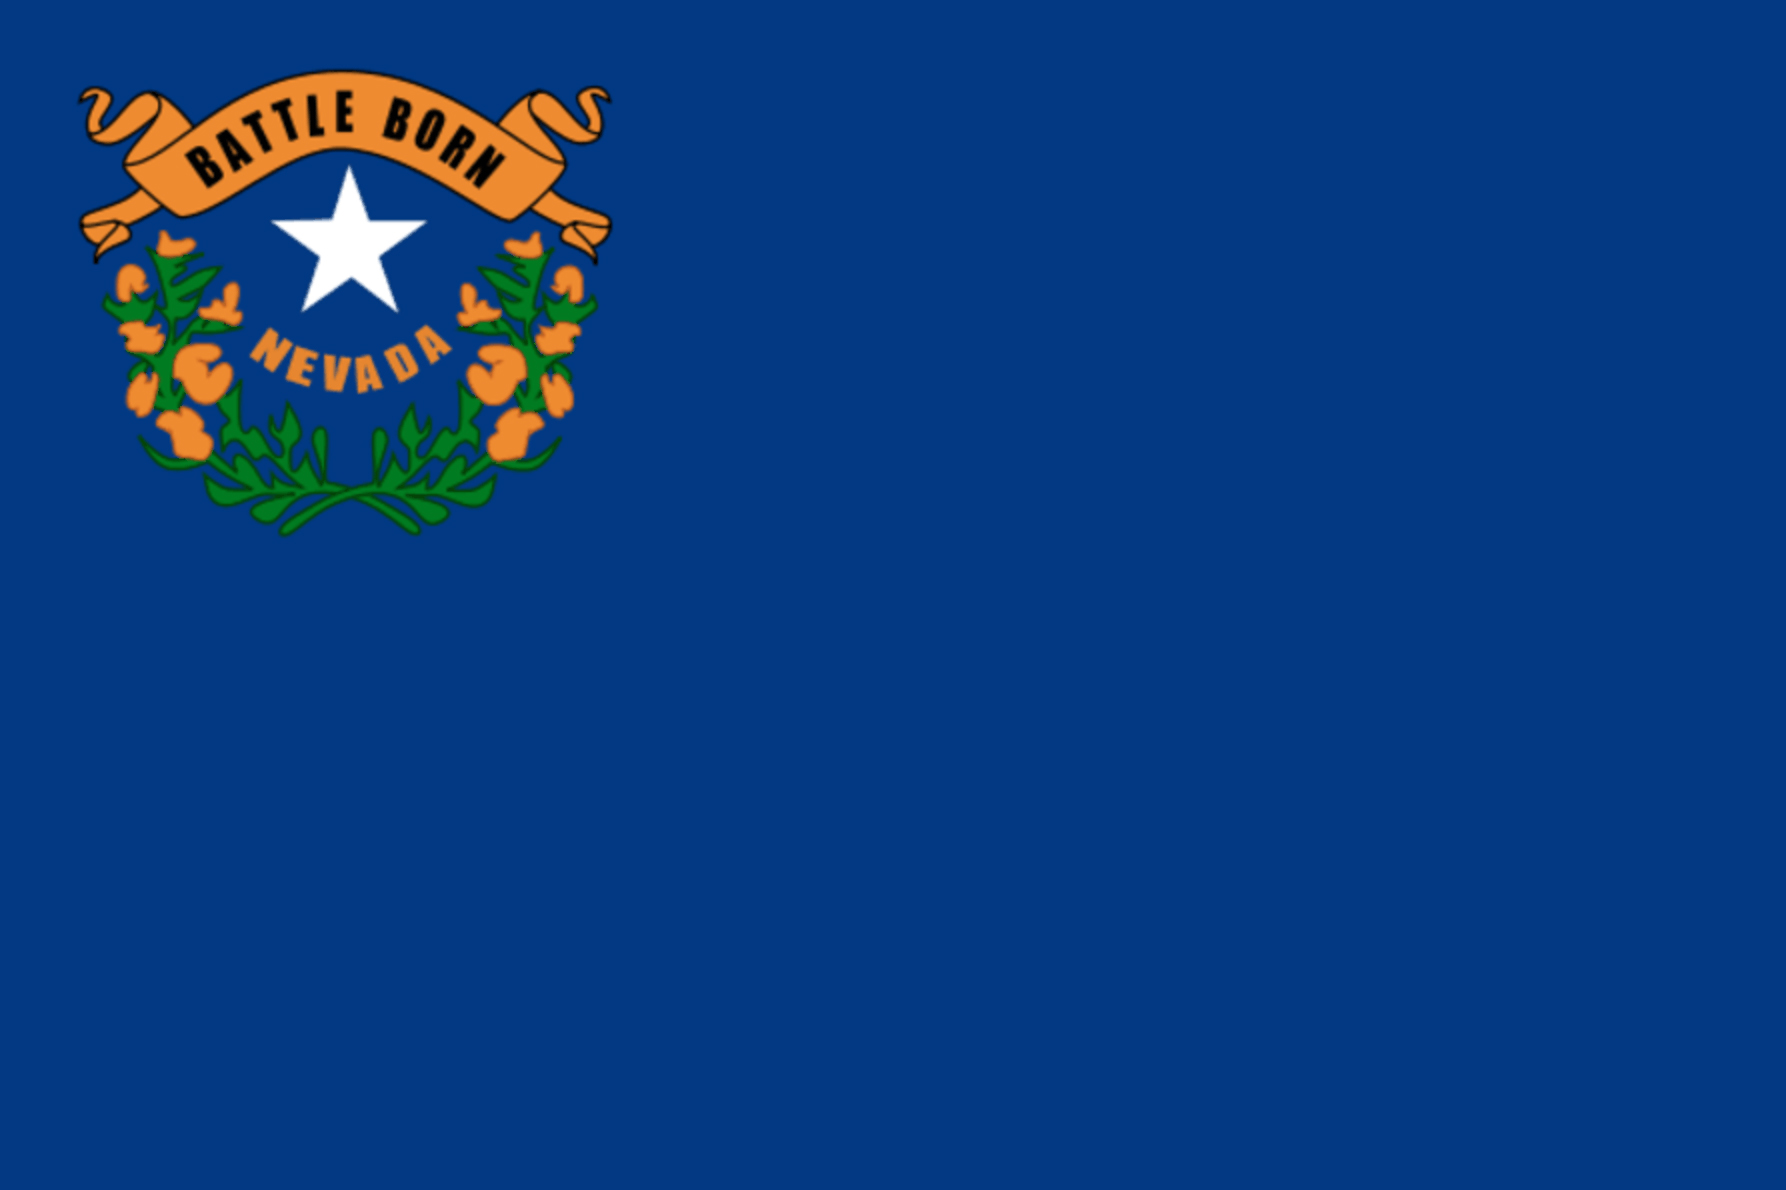 Nevada Stat flag